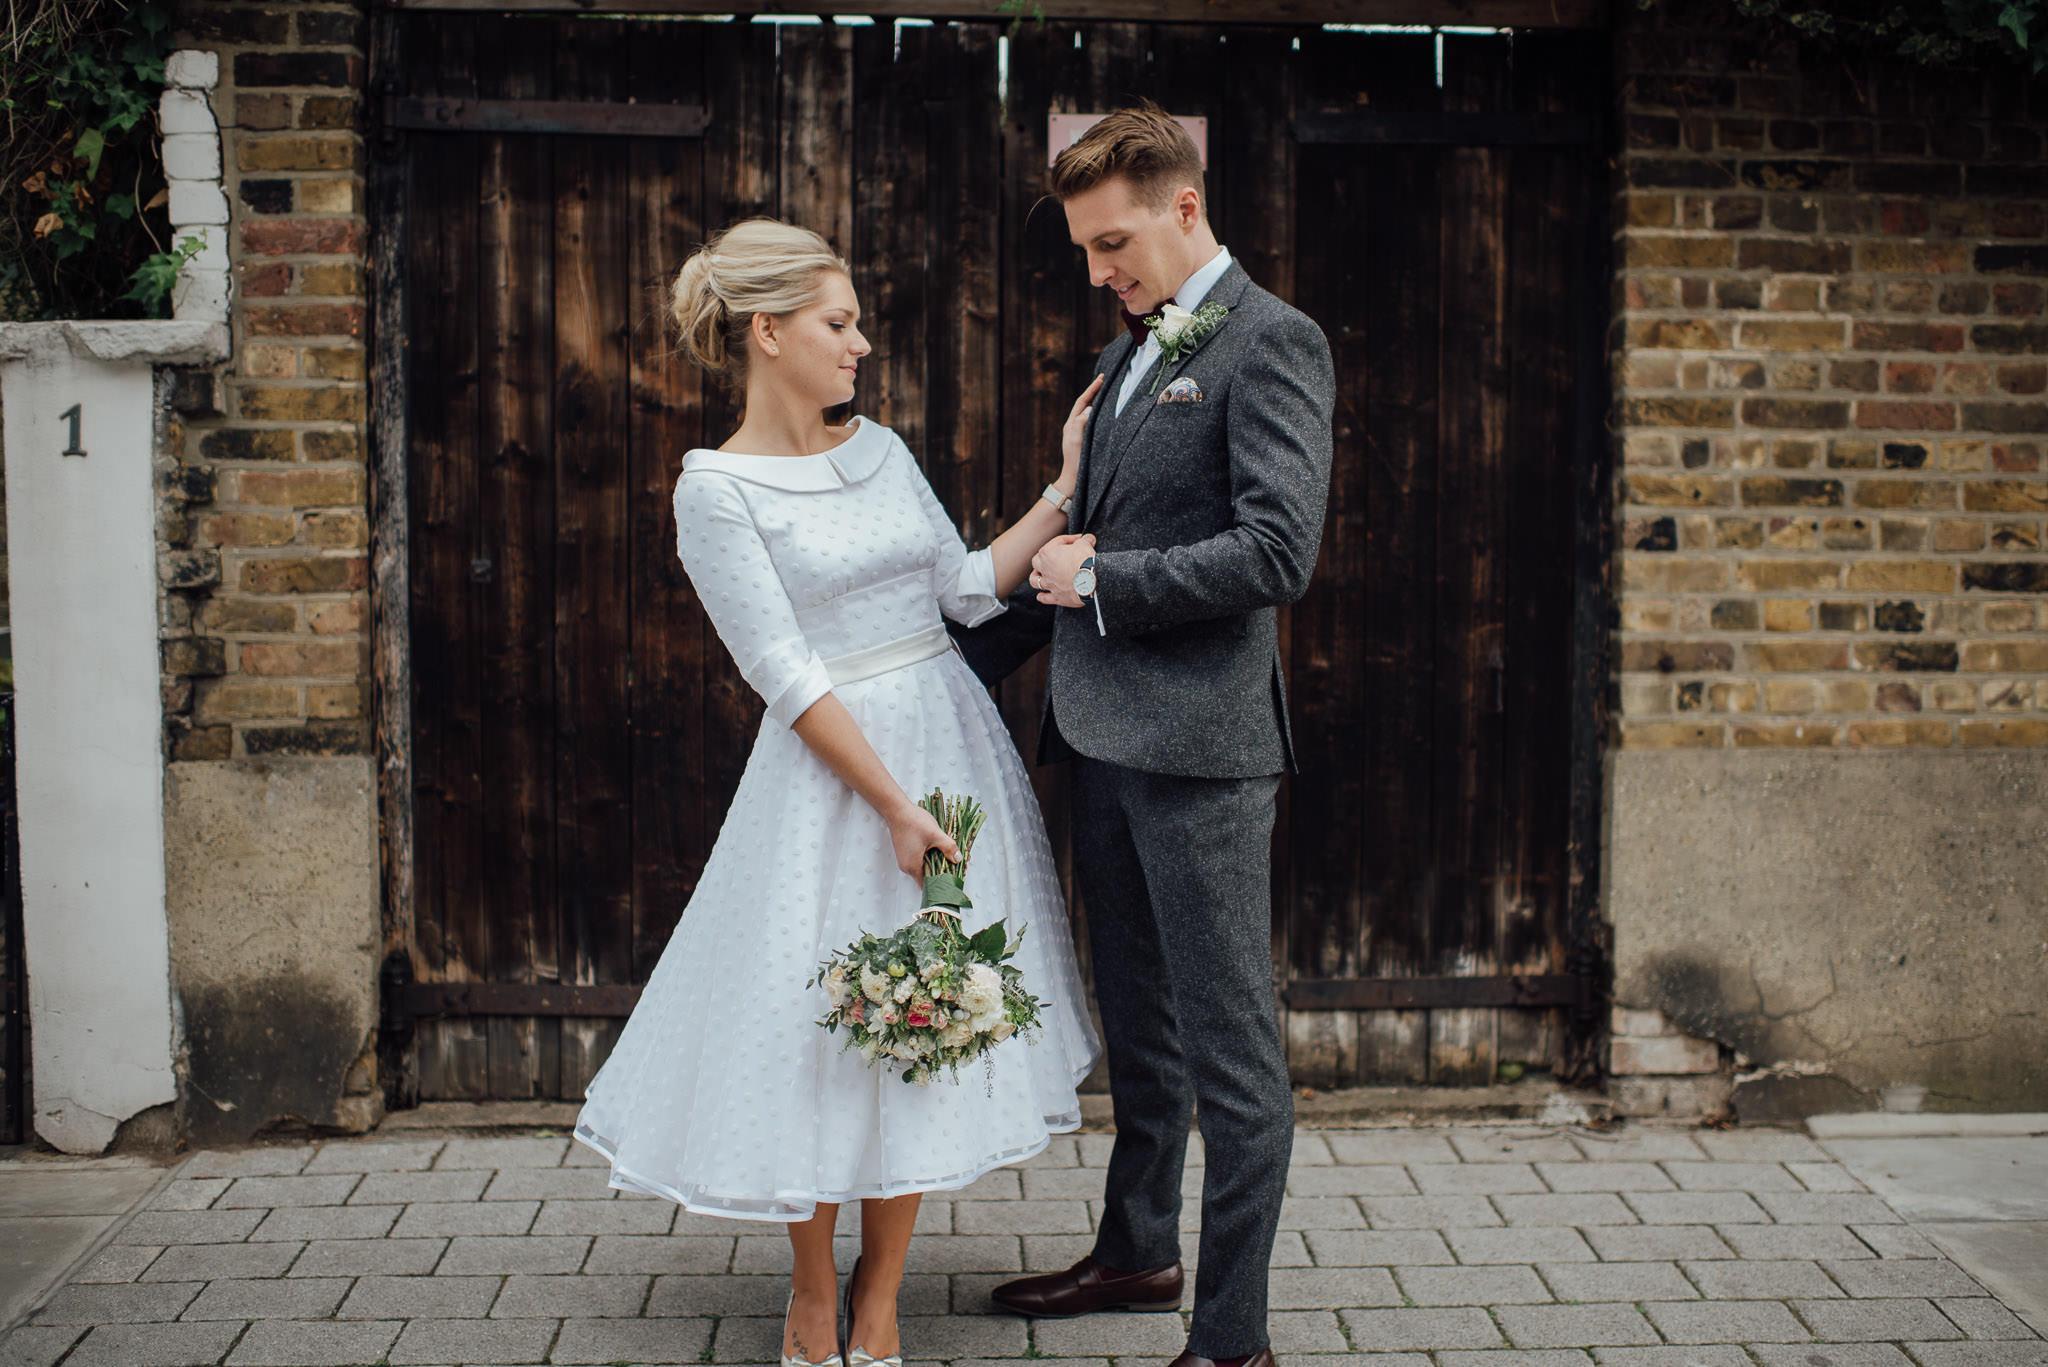 Stoke newington couple portrait outside the londesborough pub in stoke newington town hall wedding by creative and alternative london wedding photographer the shannons photography